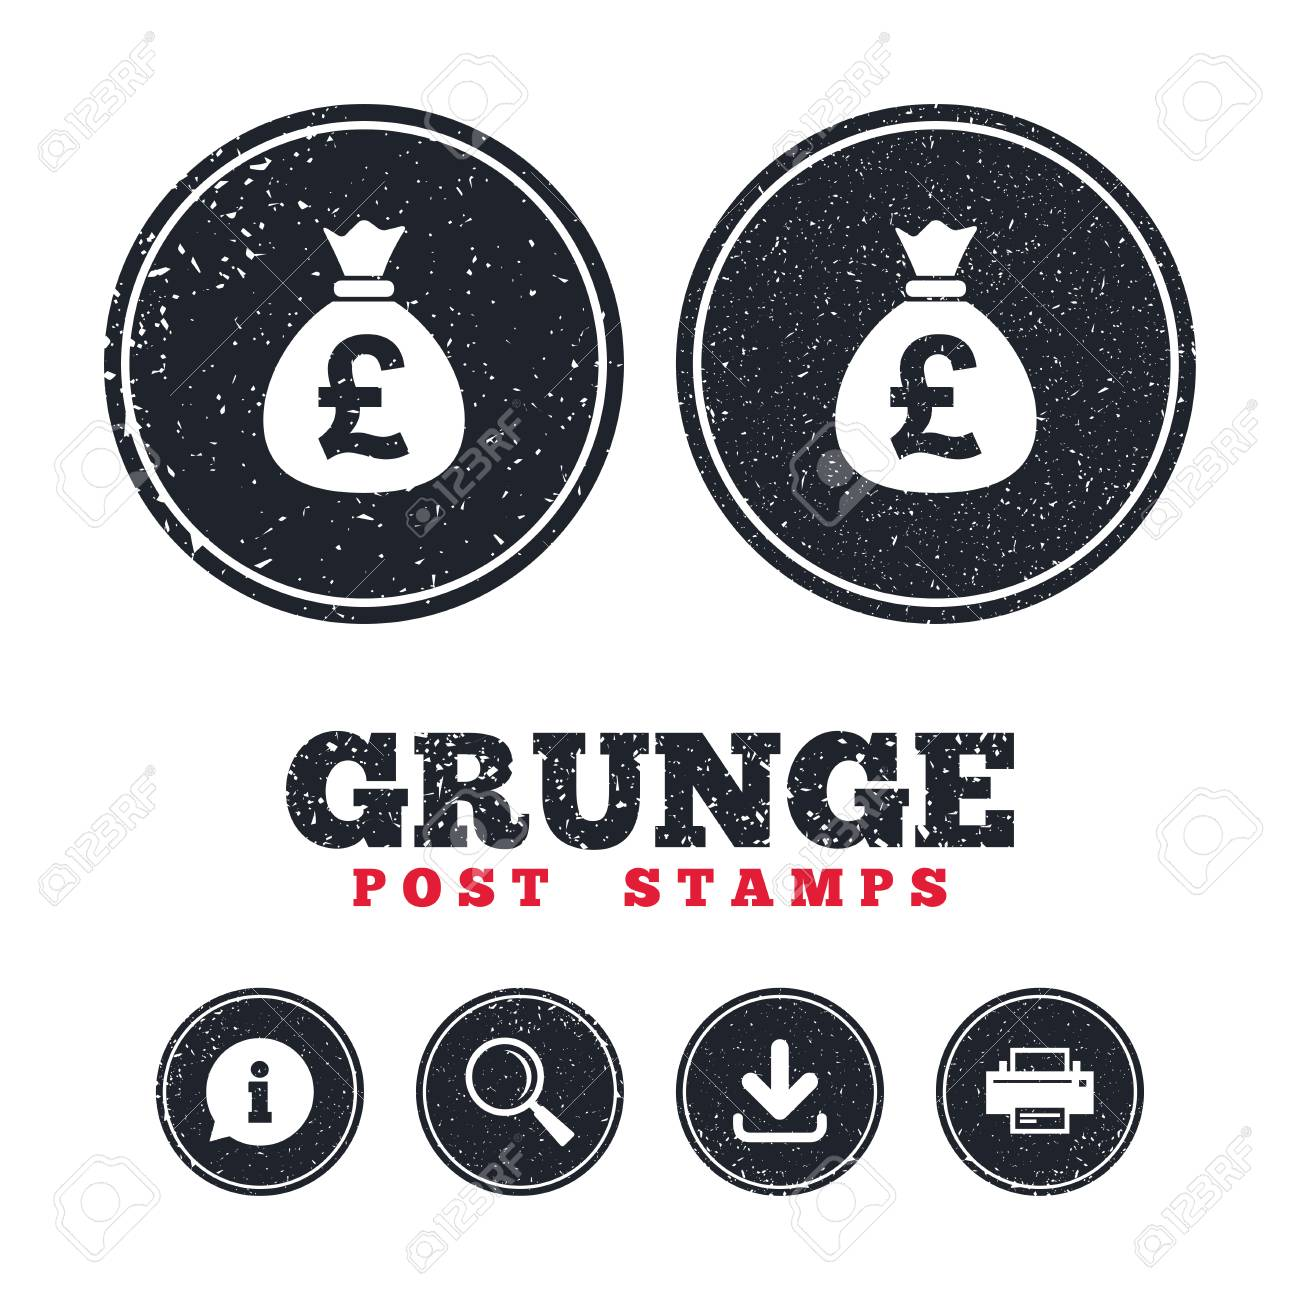 Grunge post stamps money bag sign icon pound gbp currency symbol grunge post stamps money bag sign icon pound gbp currency symbol information biocorpaavc Gallery